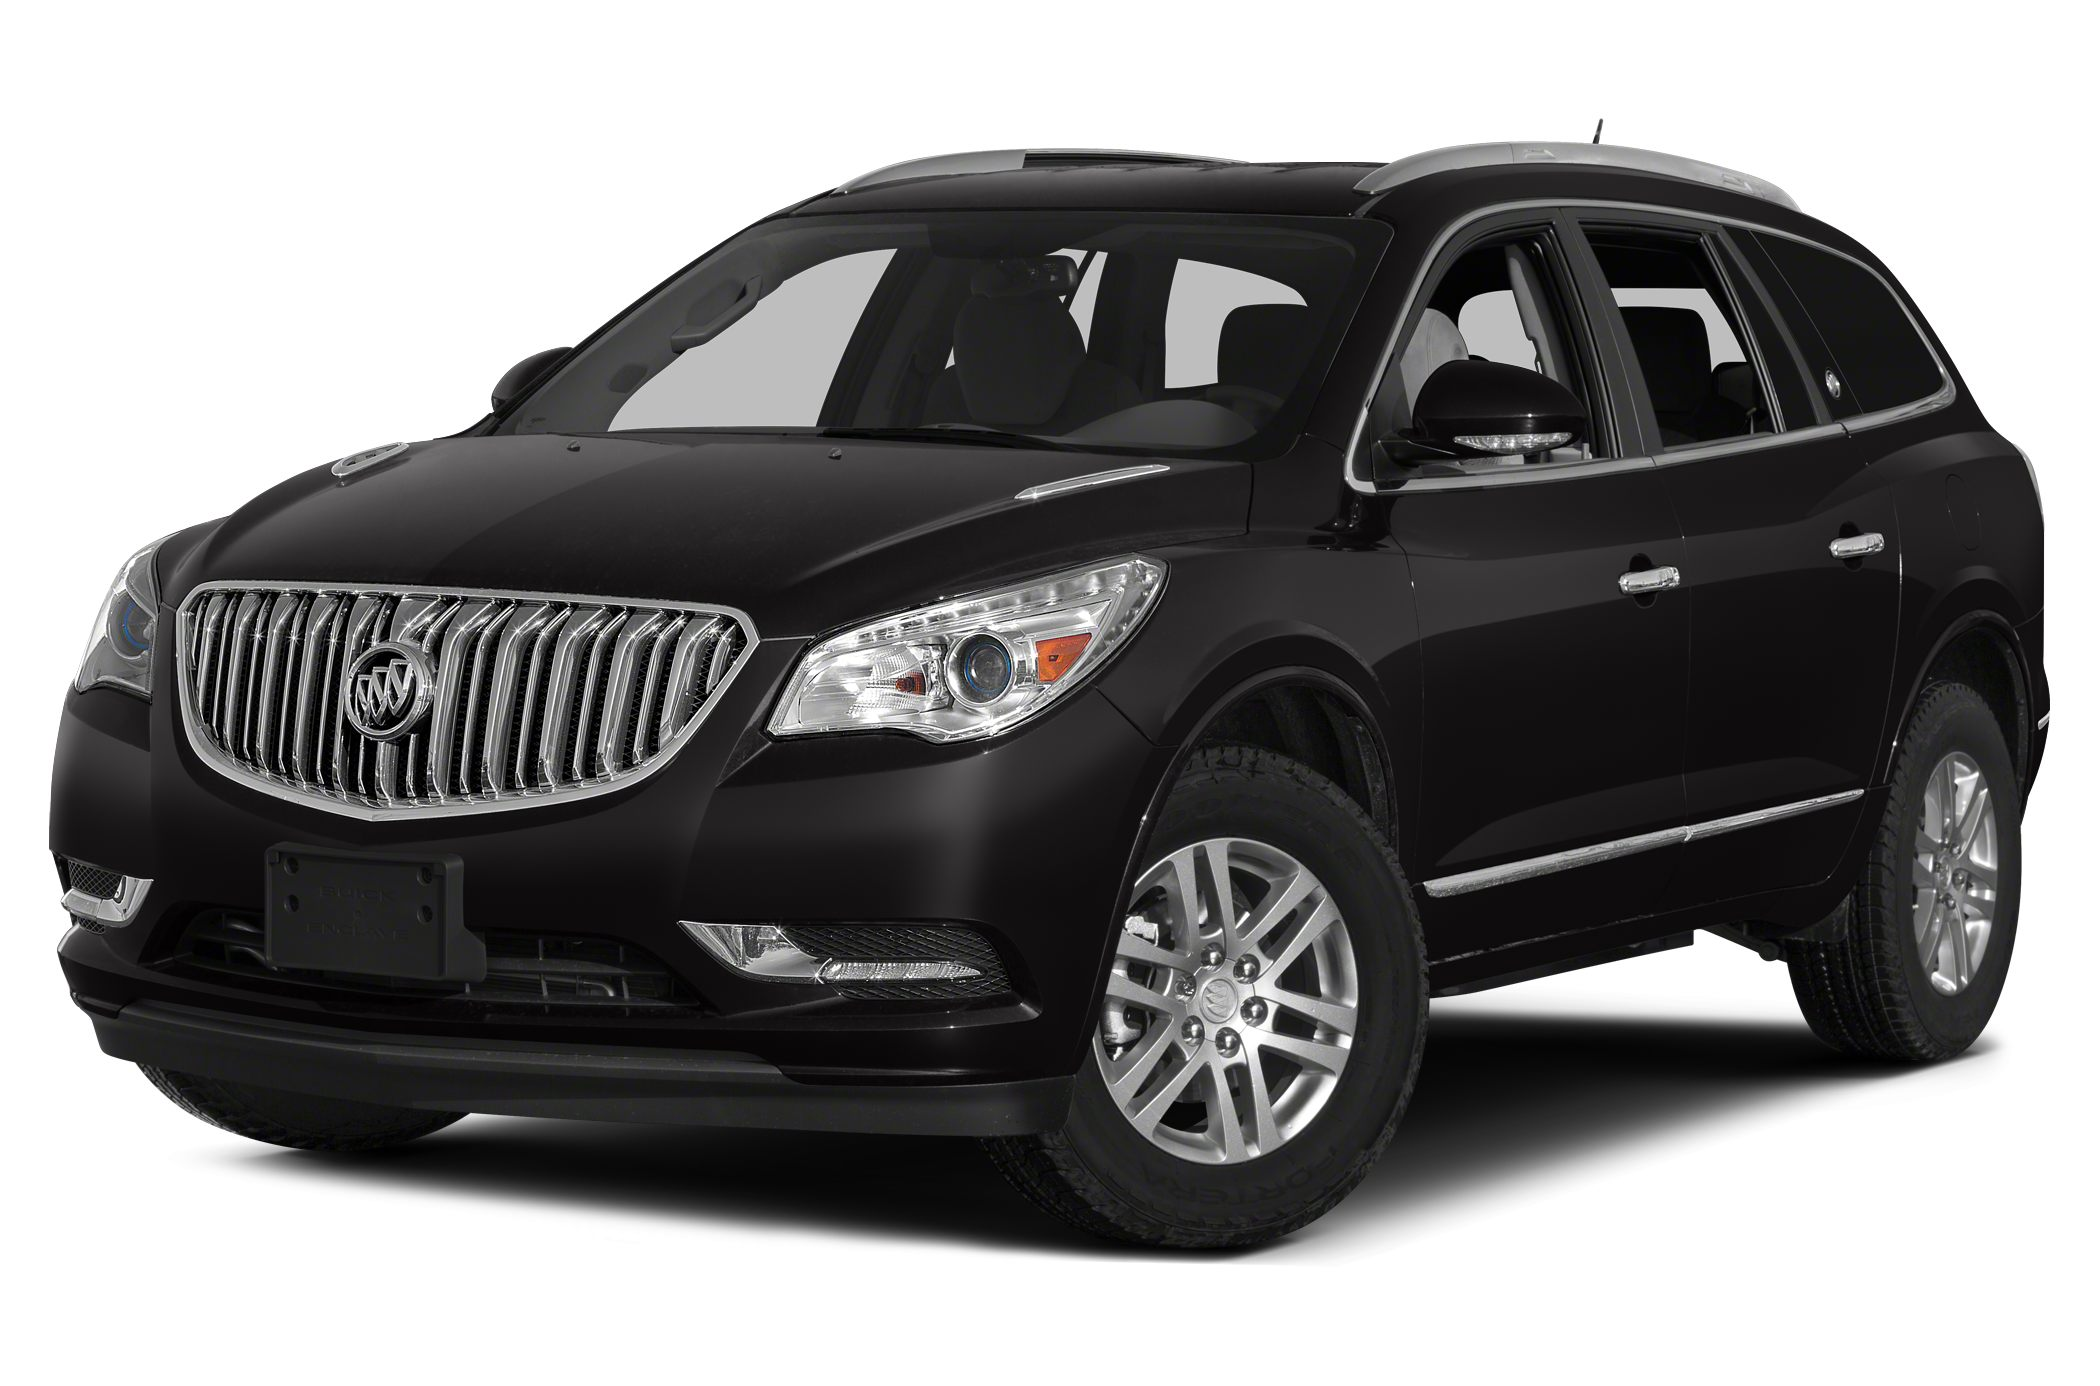 2015 Buick Enclave Convenience SUV for sale in Oconto for $41,320 with 4 miles.